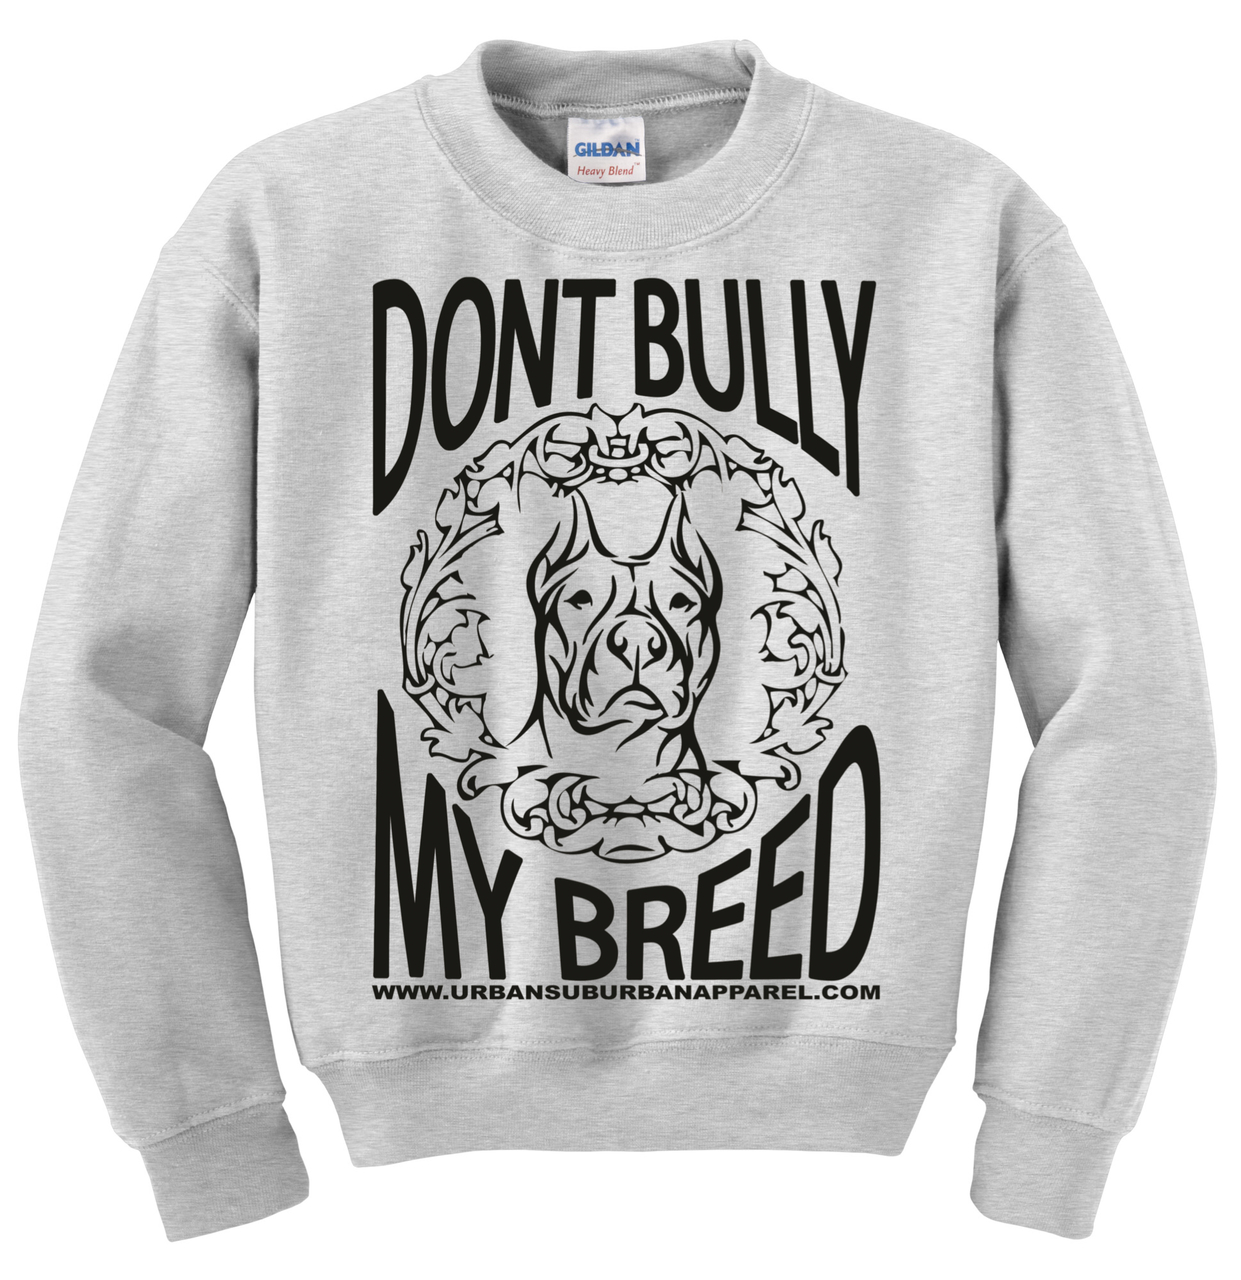 DON'T BULLY MY BREED Unisex Crew Sweatshirt